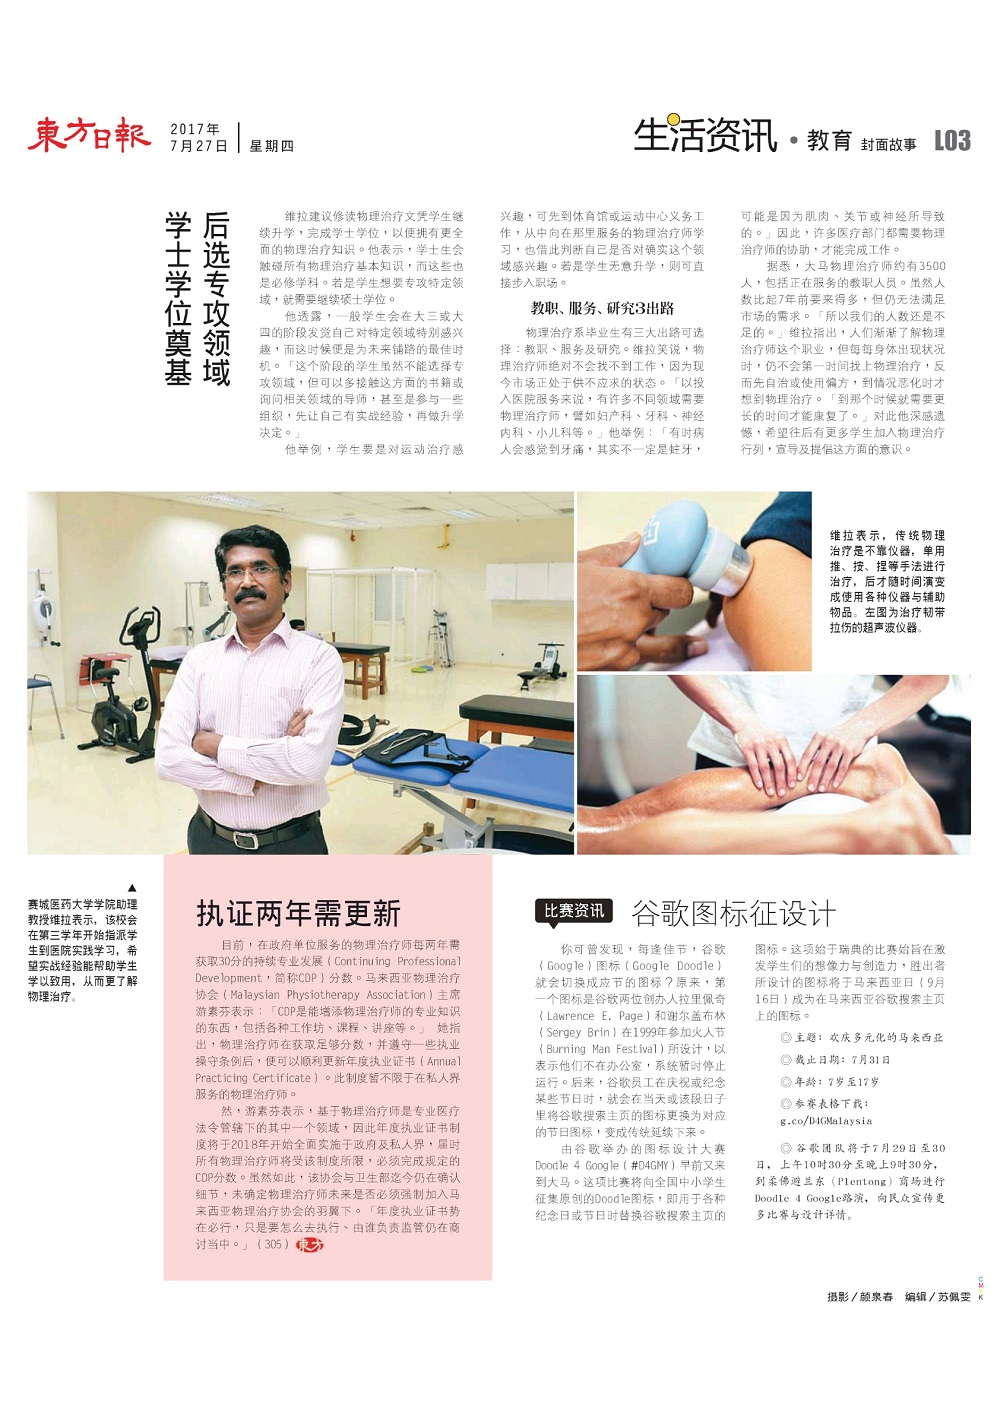 oriental-daily-3-physiotherapy-cyrus